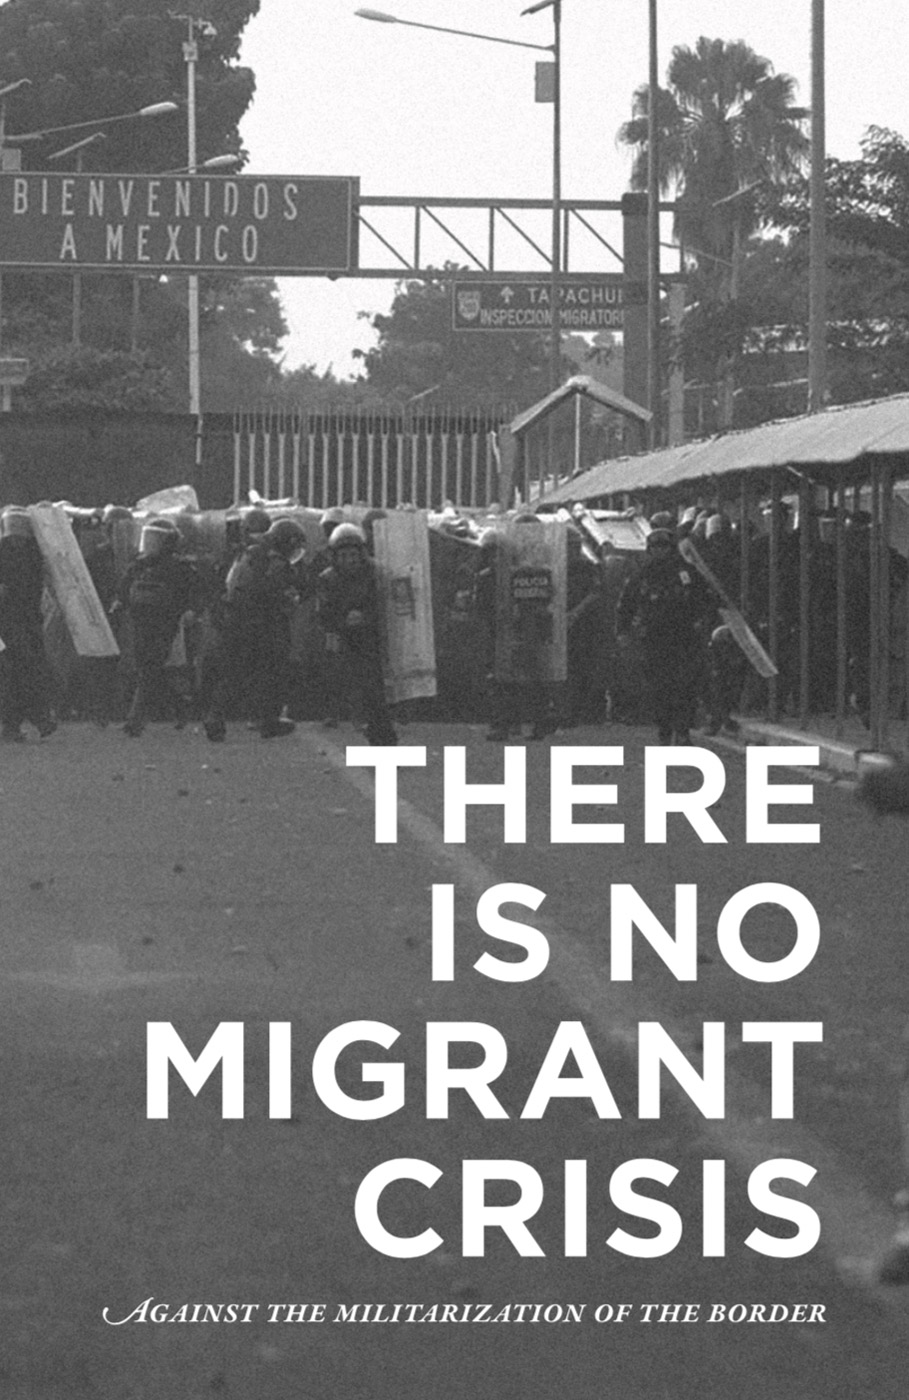 Photo of 'There is No Migrant Crisis' front cover